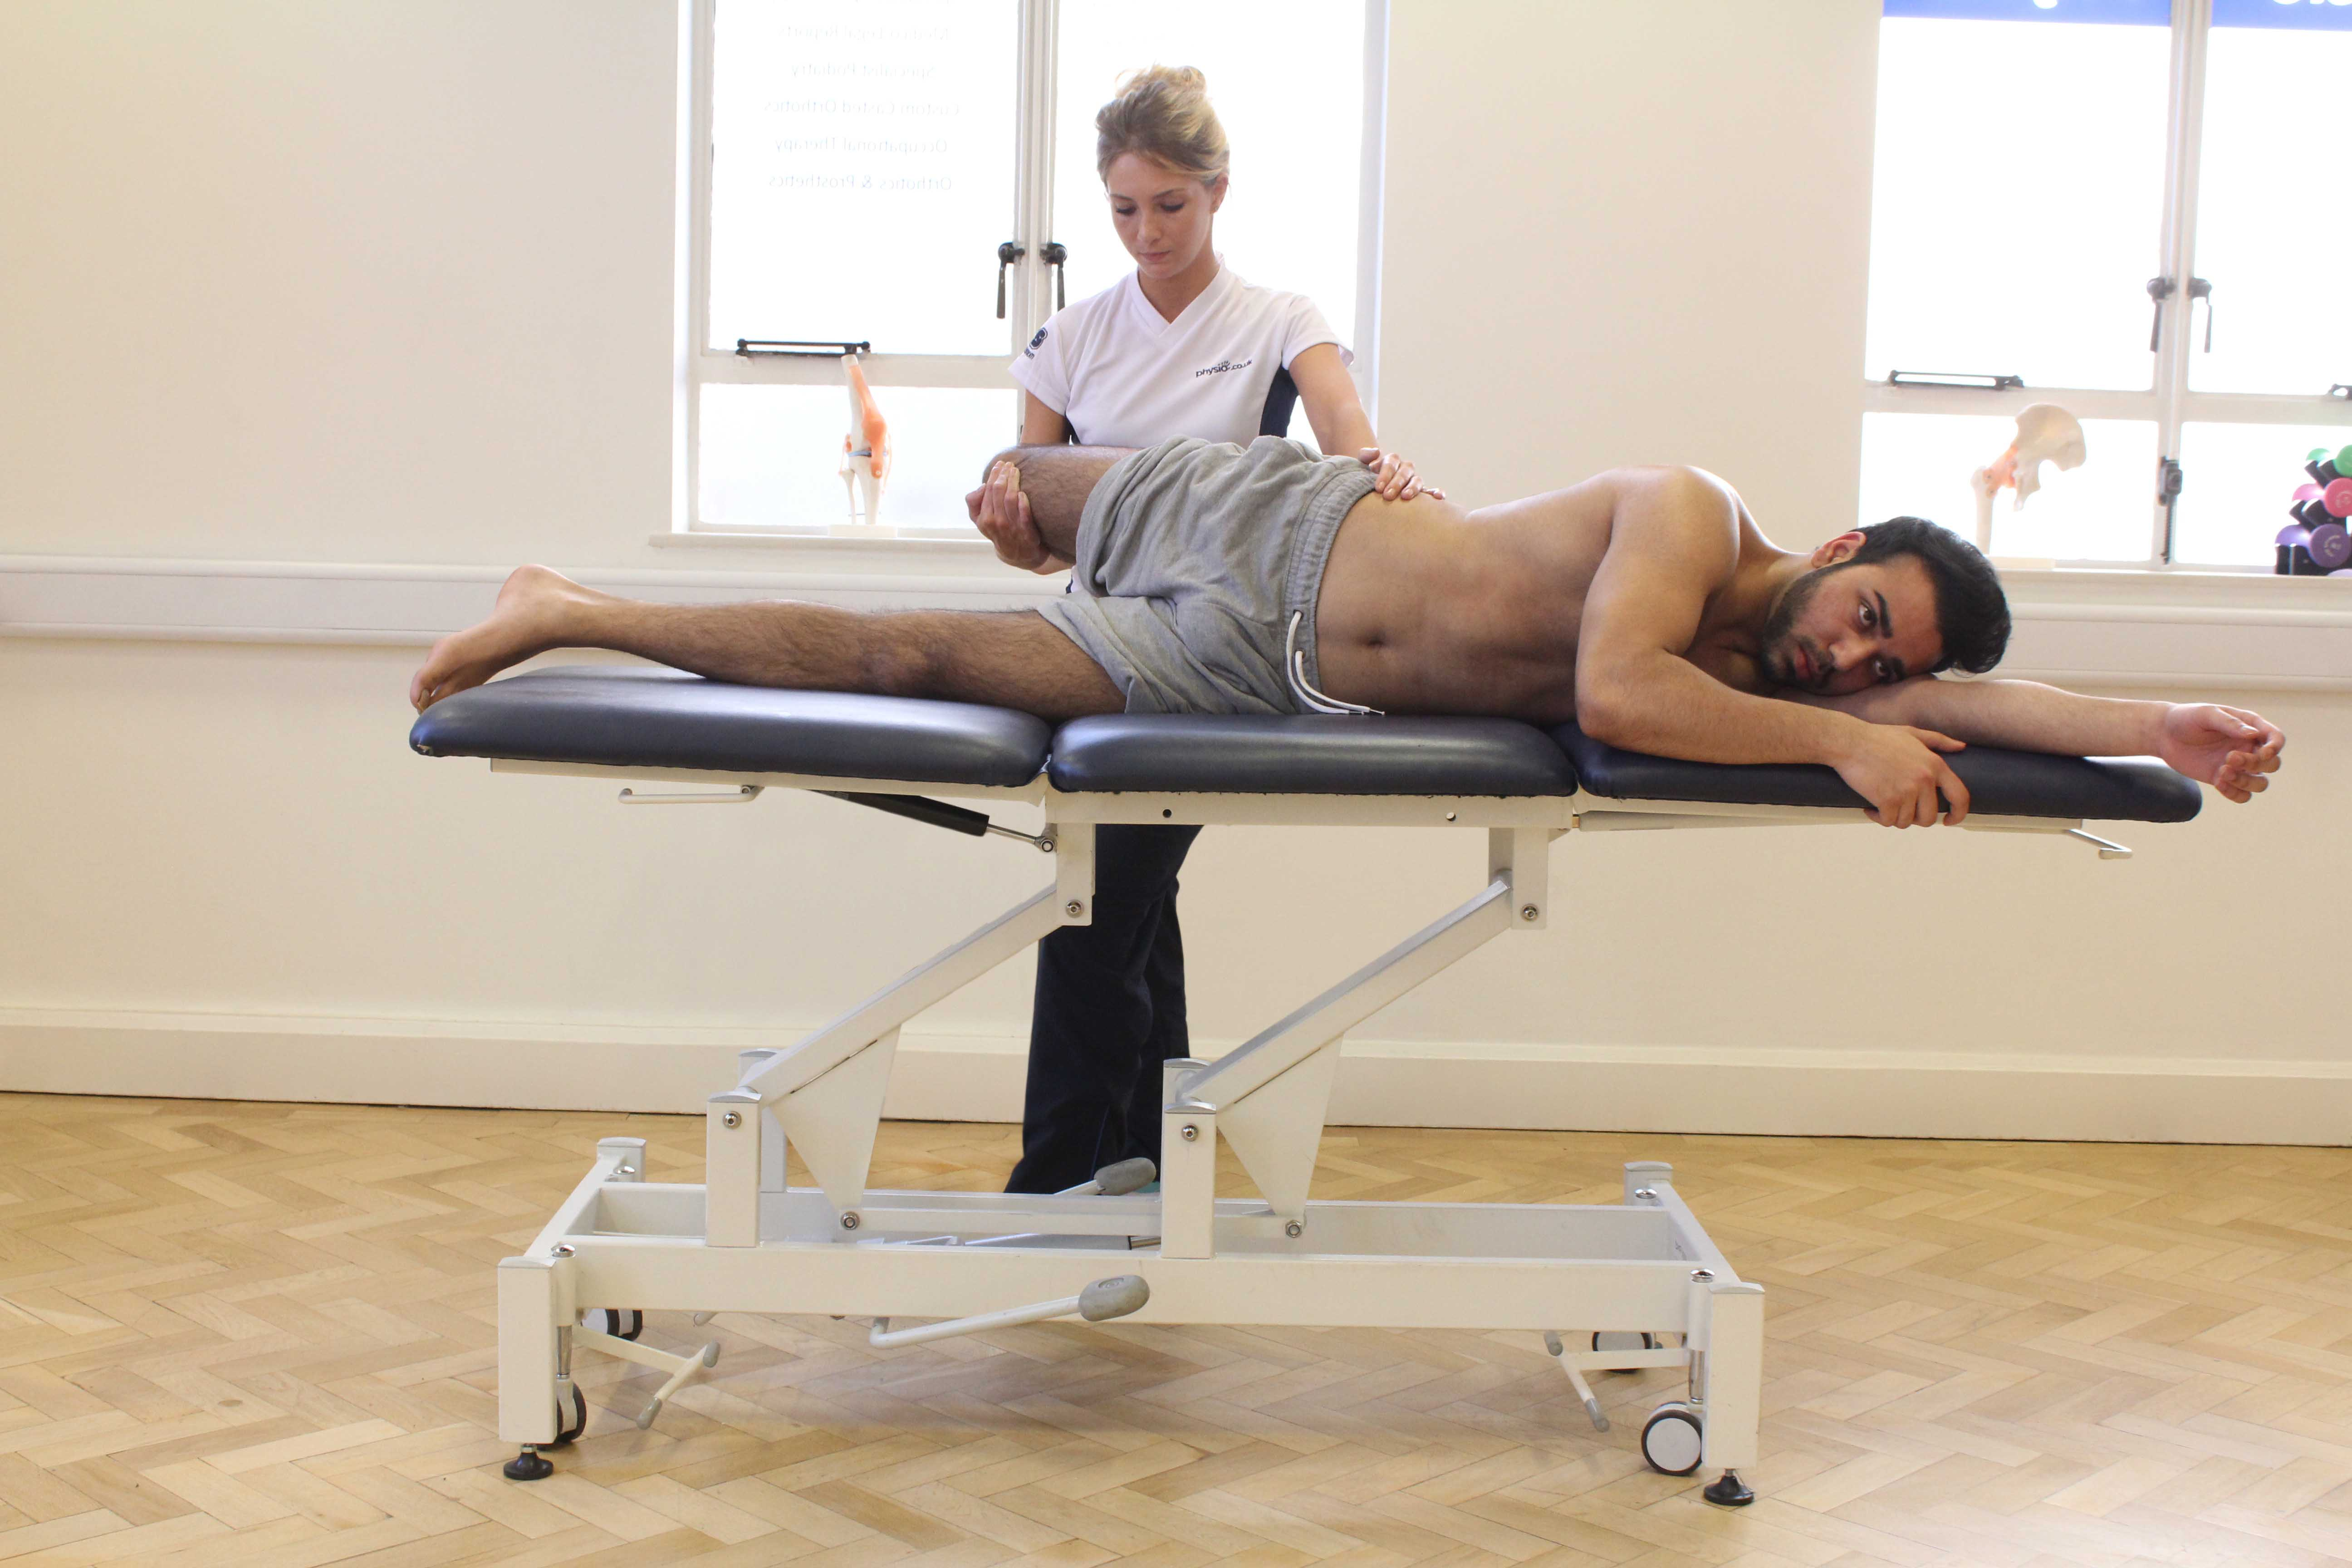 Soft tissue massage of the upper back and shoulder by a physiotherapist